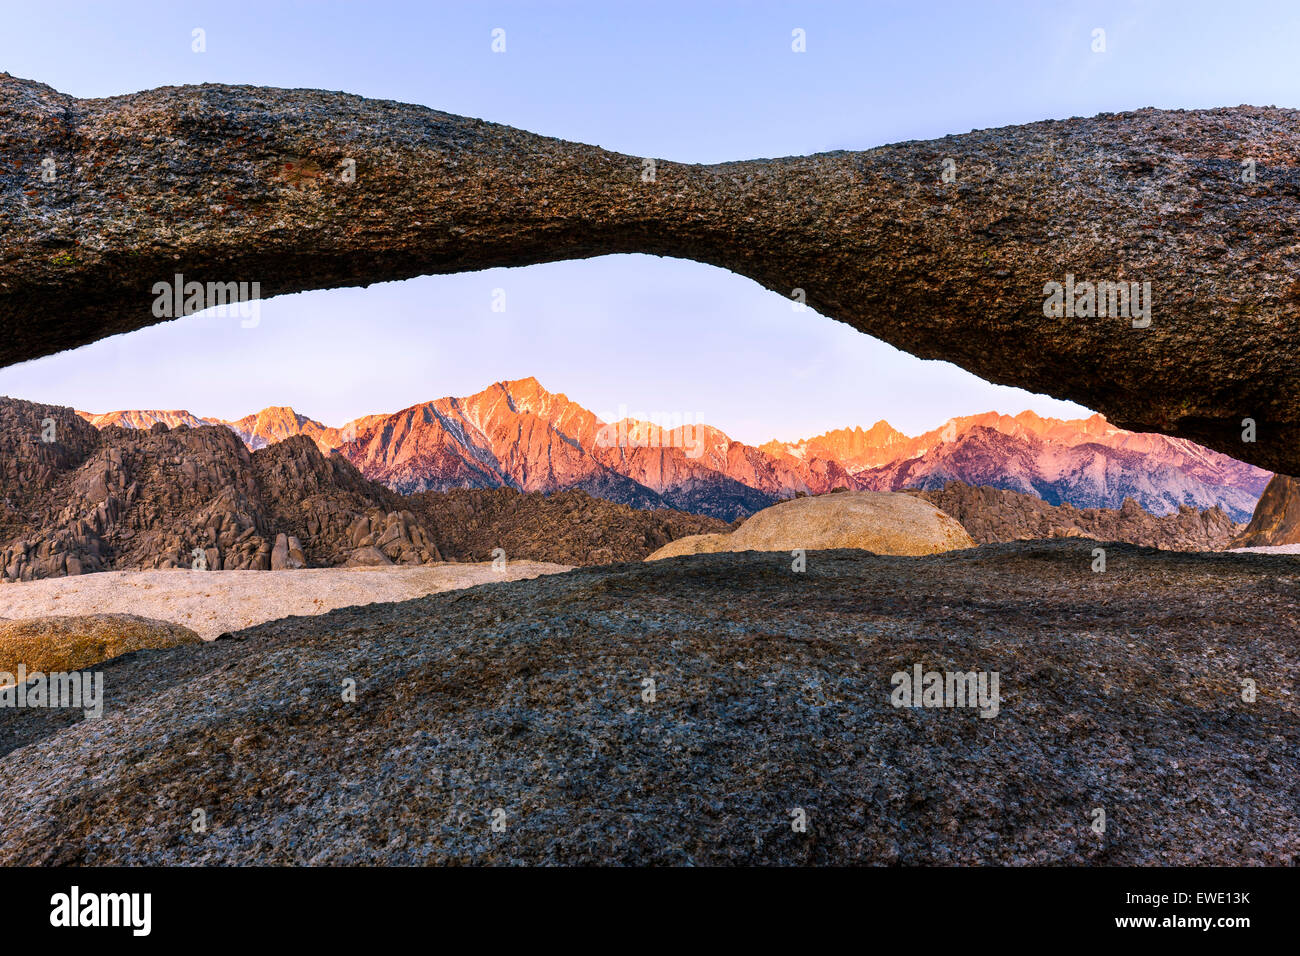 Sunrise at Lathe Arch in the Alabama Hills with the view towards the Sierra Nevada, California, USA. - Stock Image